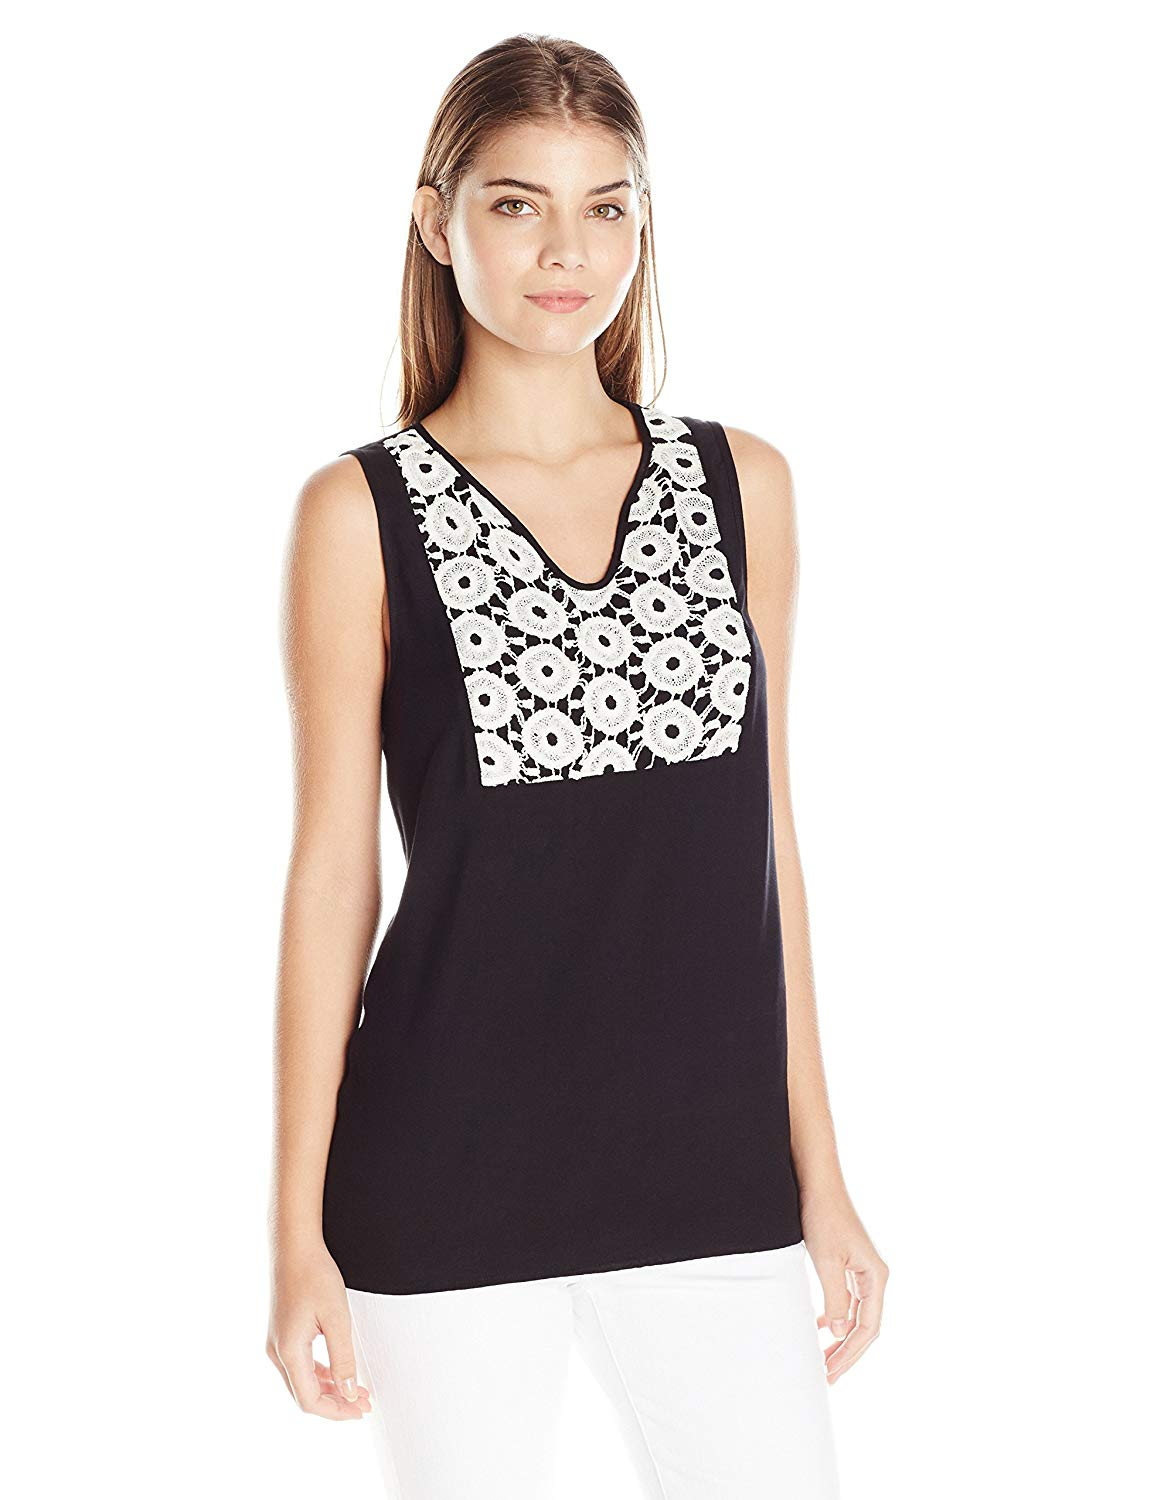 Kensie Women's Crochet Twill Tank Top Black M